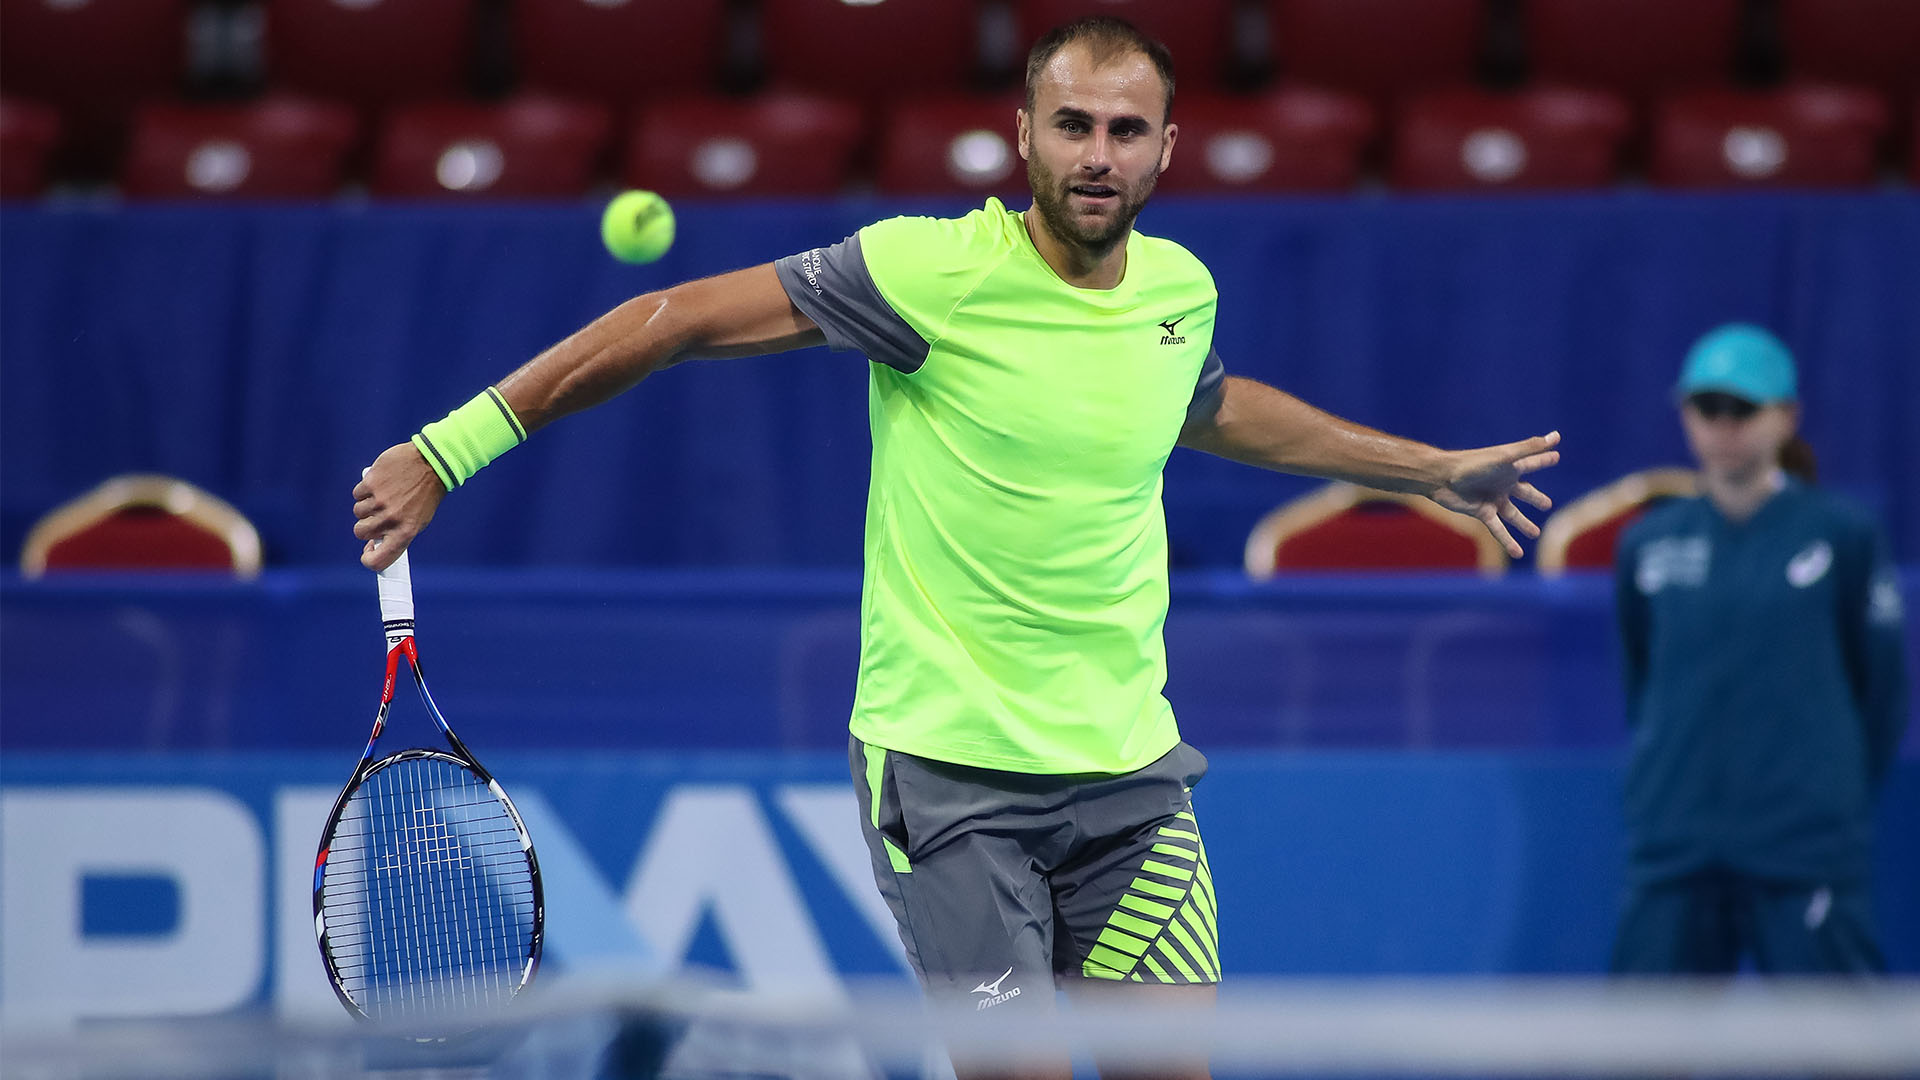 Marius Copil vs Gilles Muller